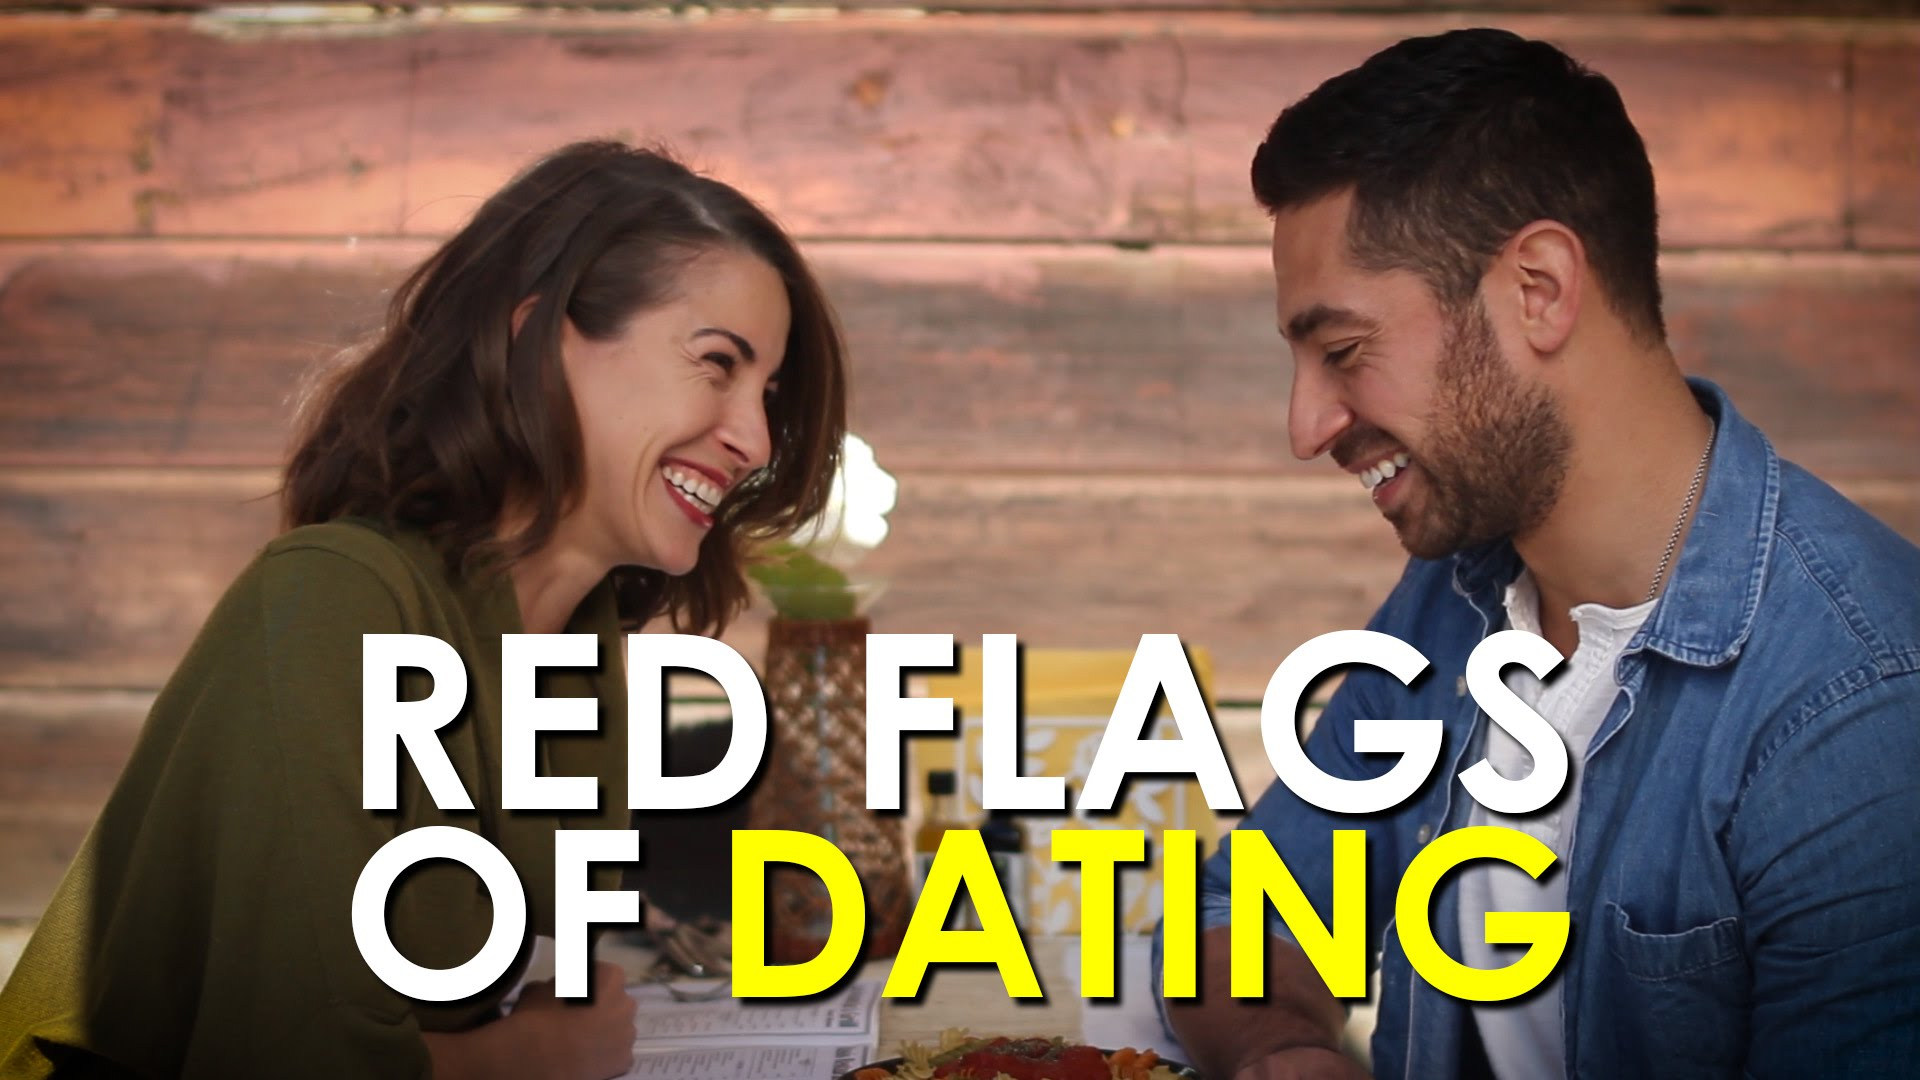 red flags and dating kickbacks